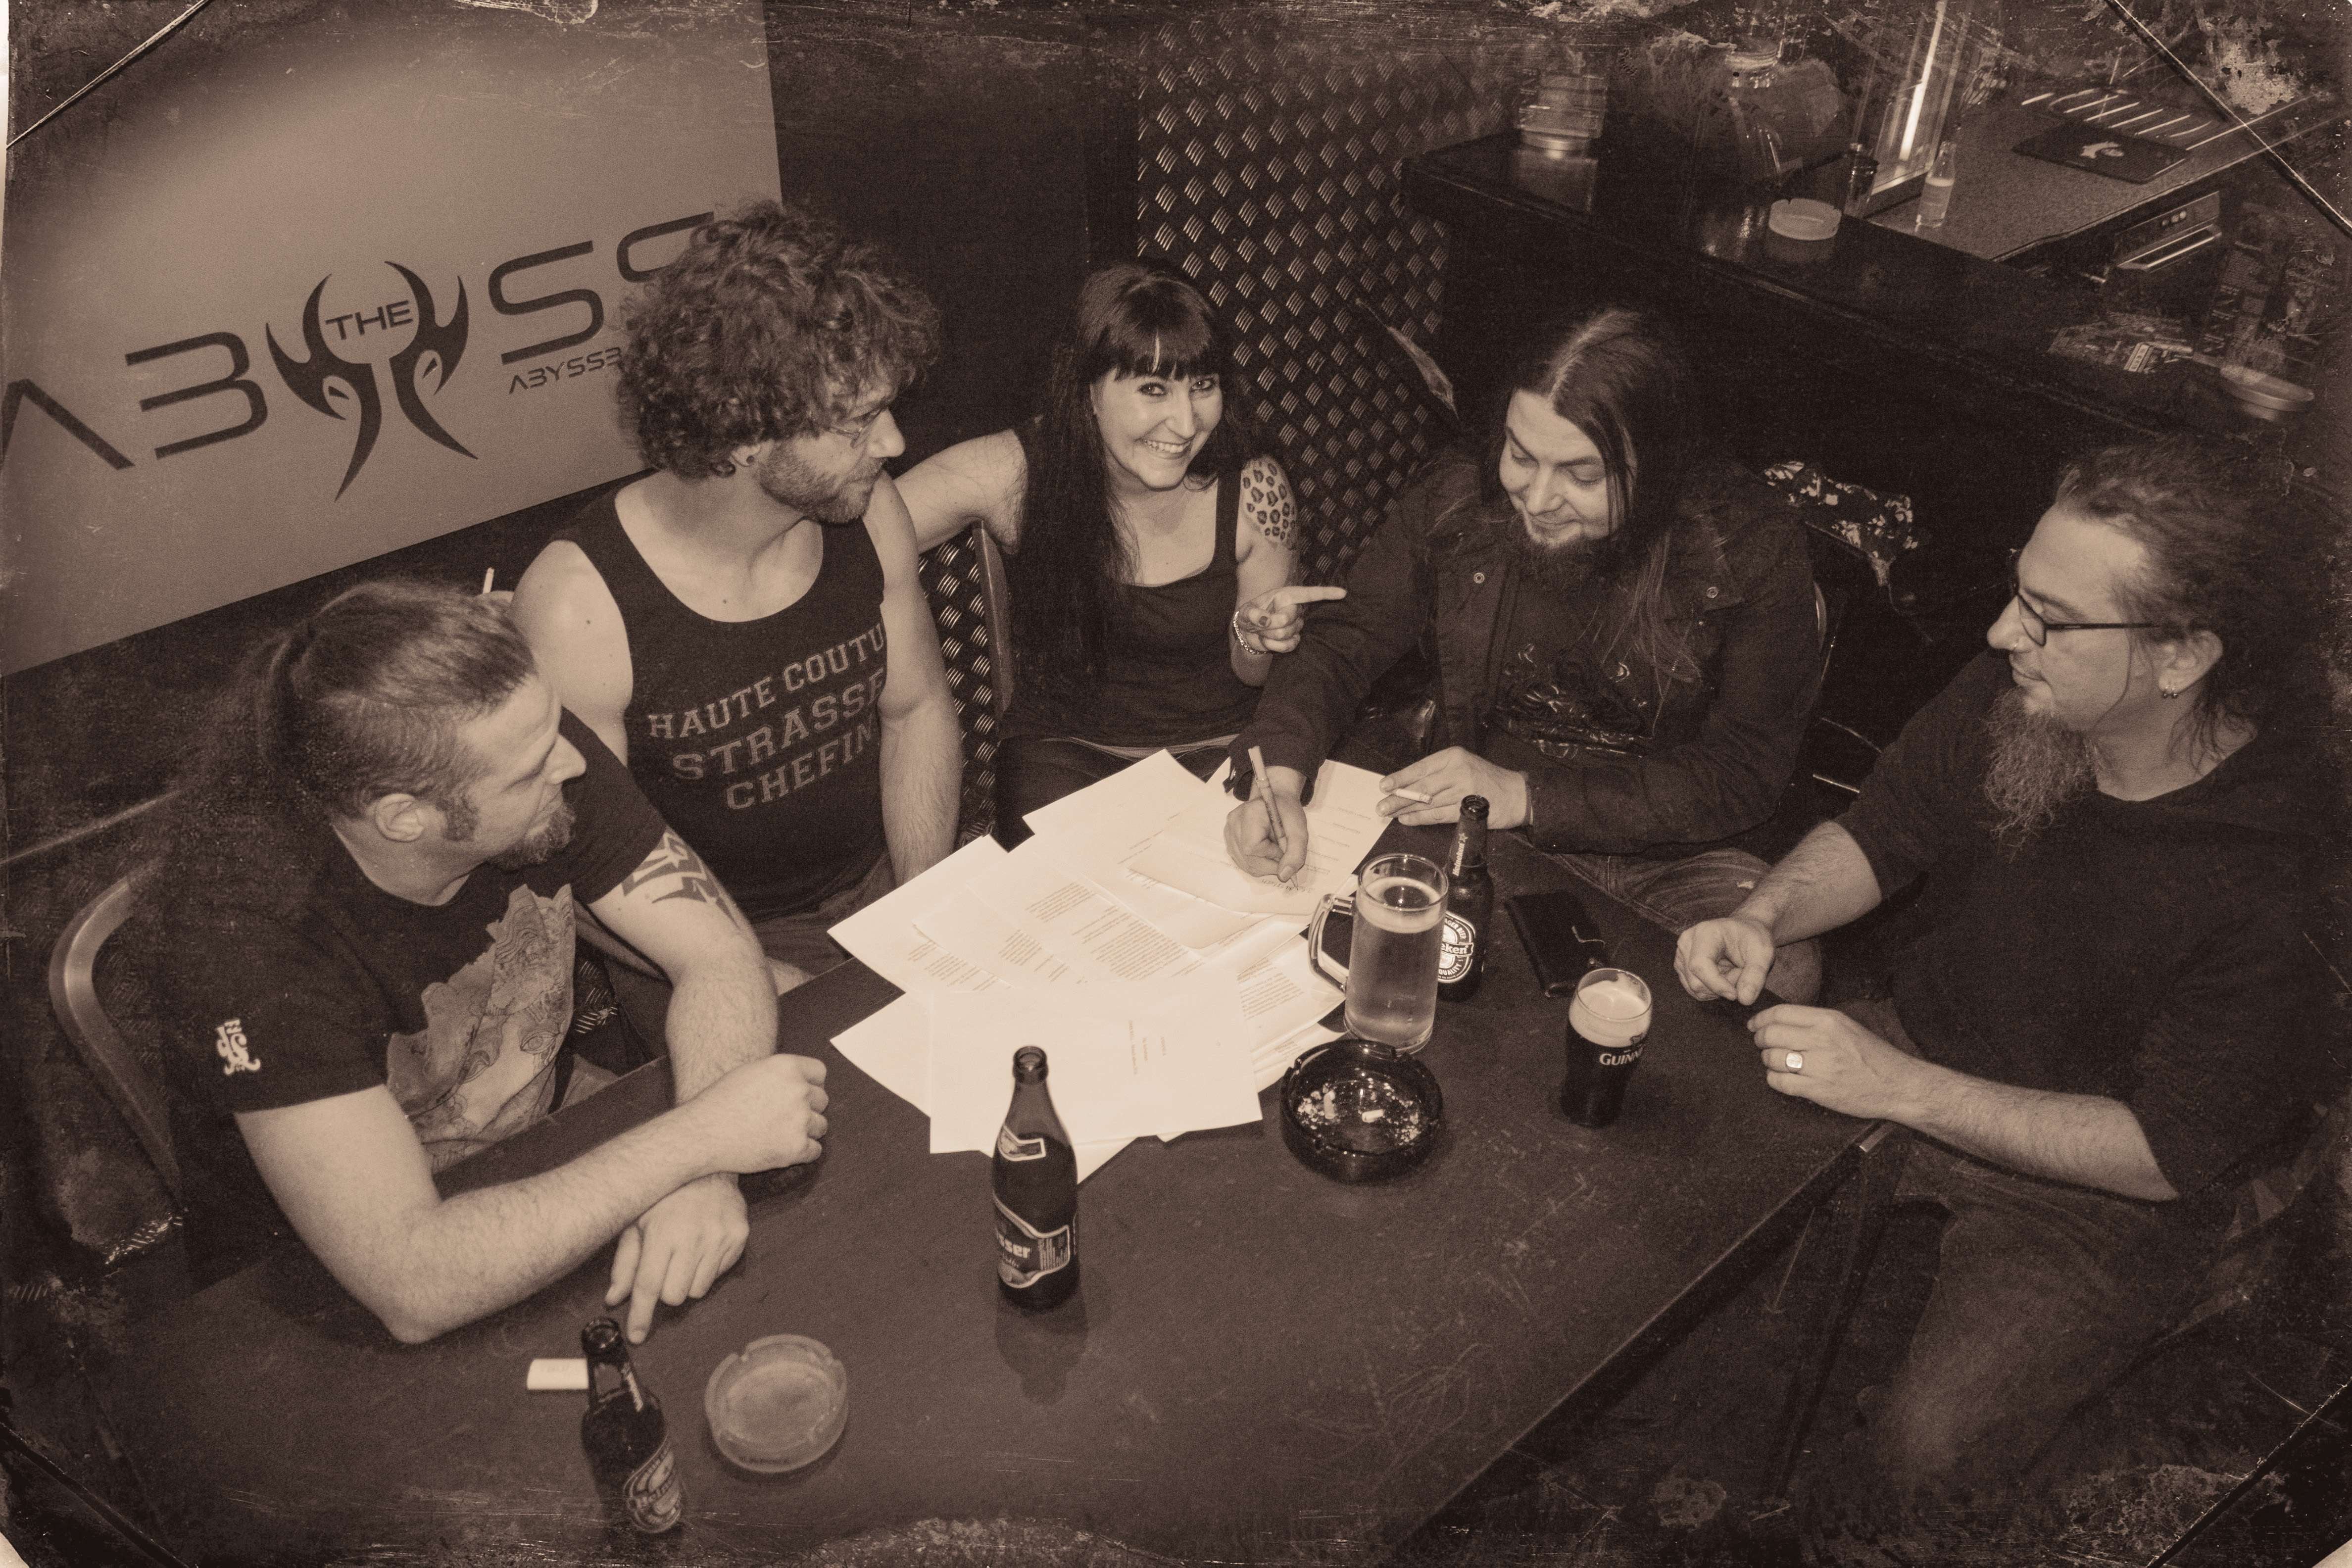 BEHIND THE VEIL WEBZINE BLOG: DARKWELL signs with Massacre Records